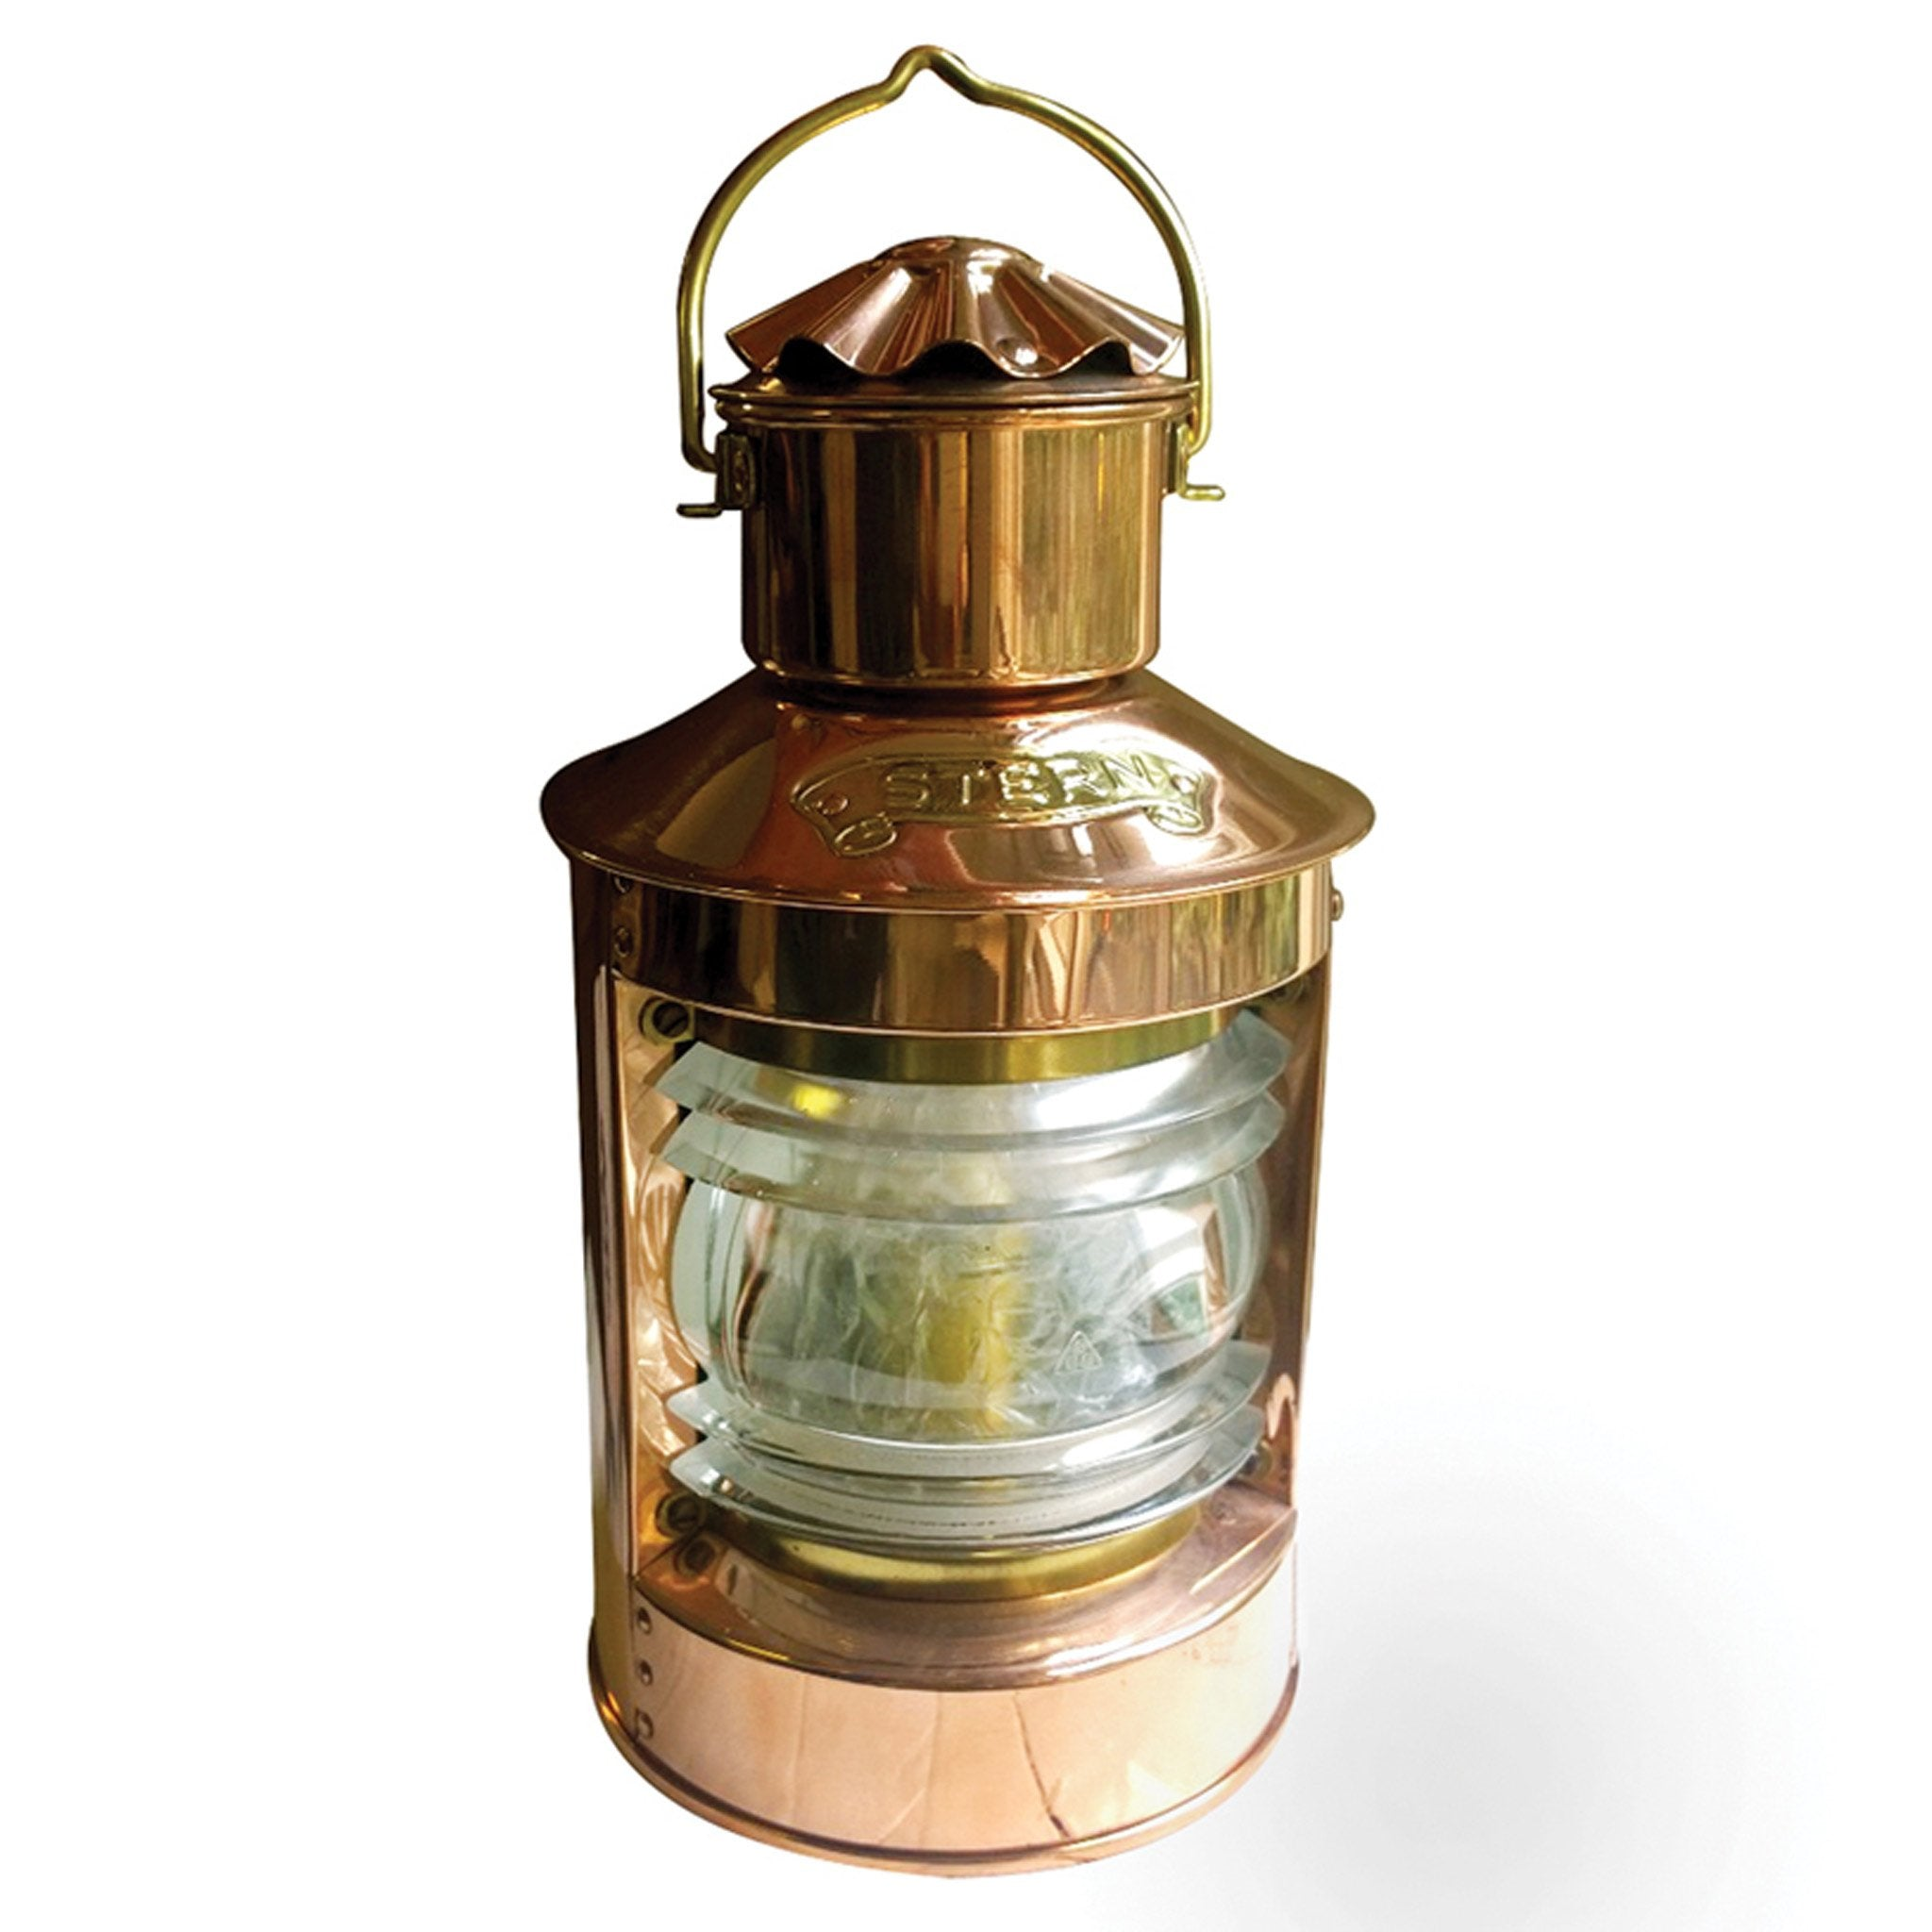 Copper Stern Oil Lamp - Arthur Beale